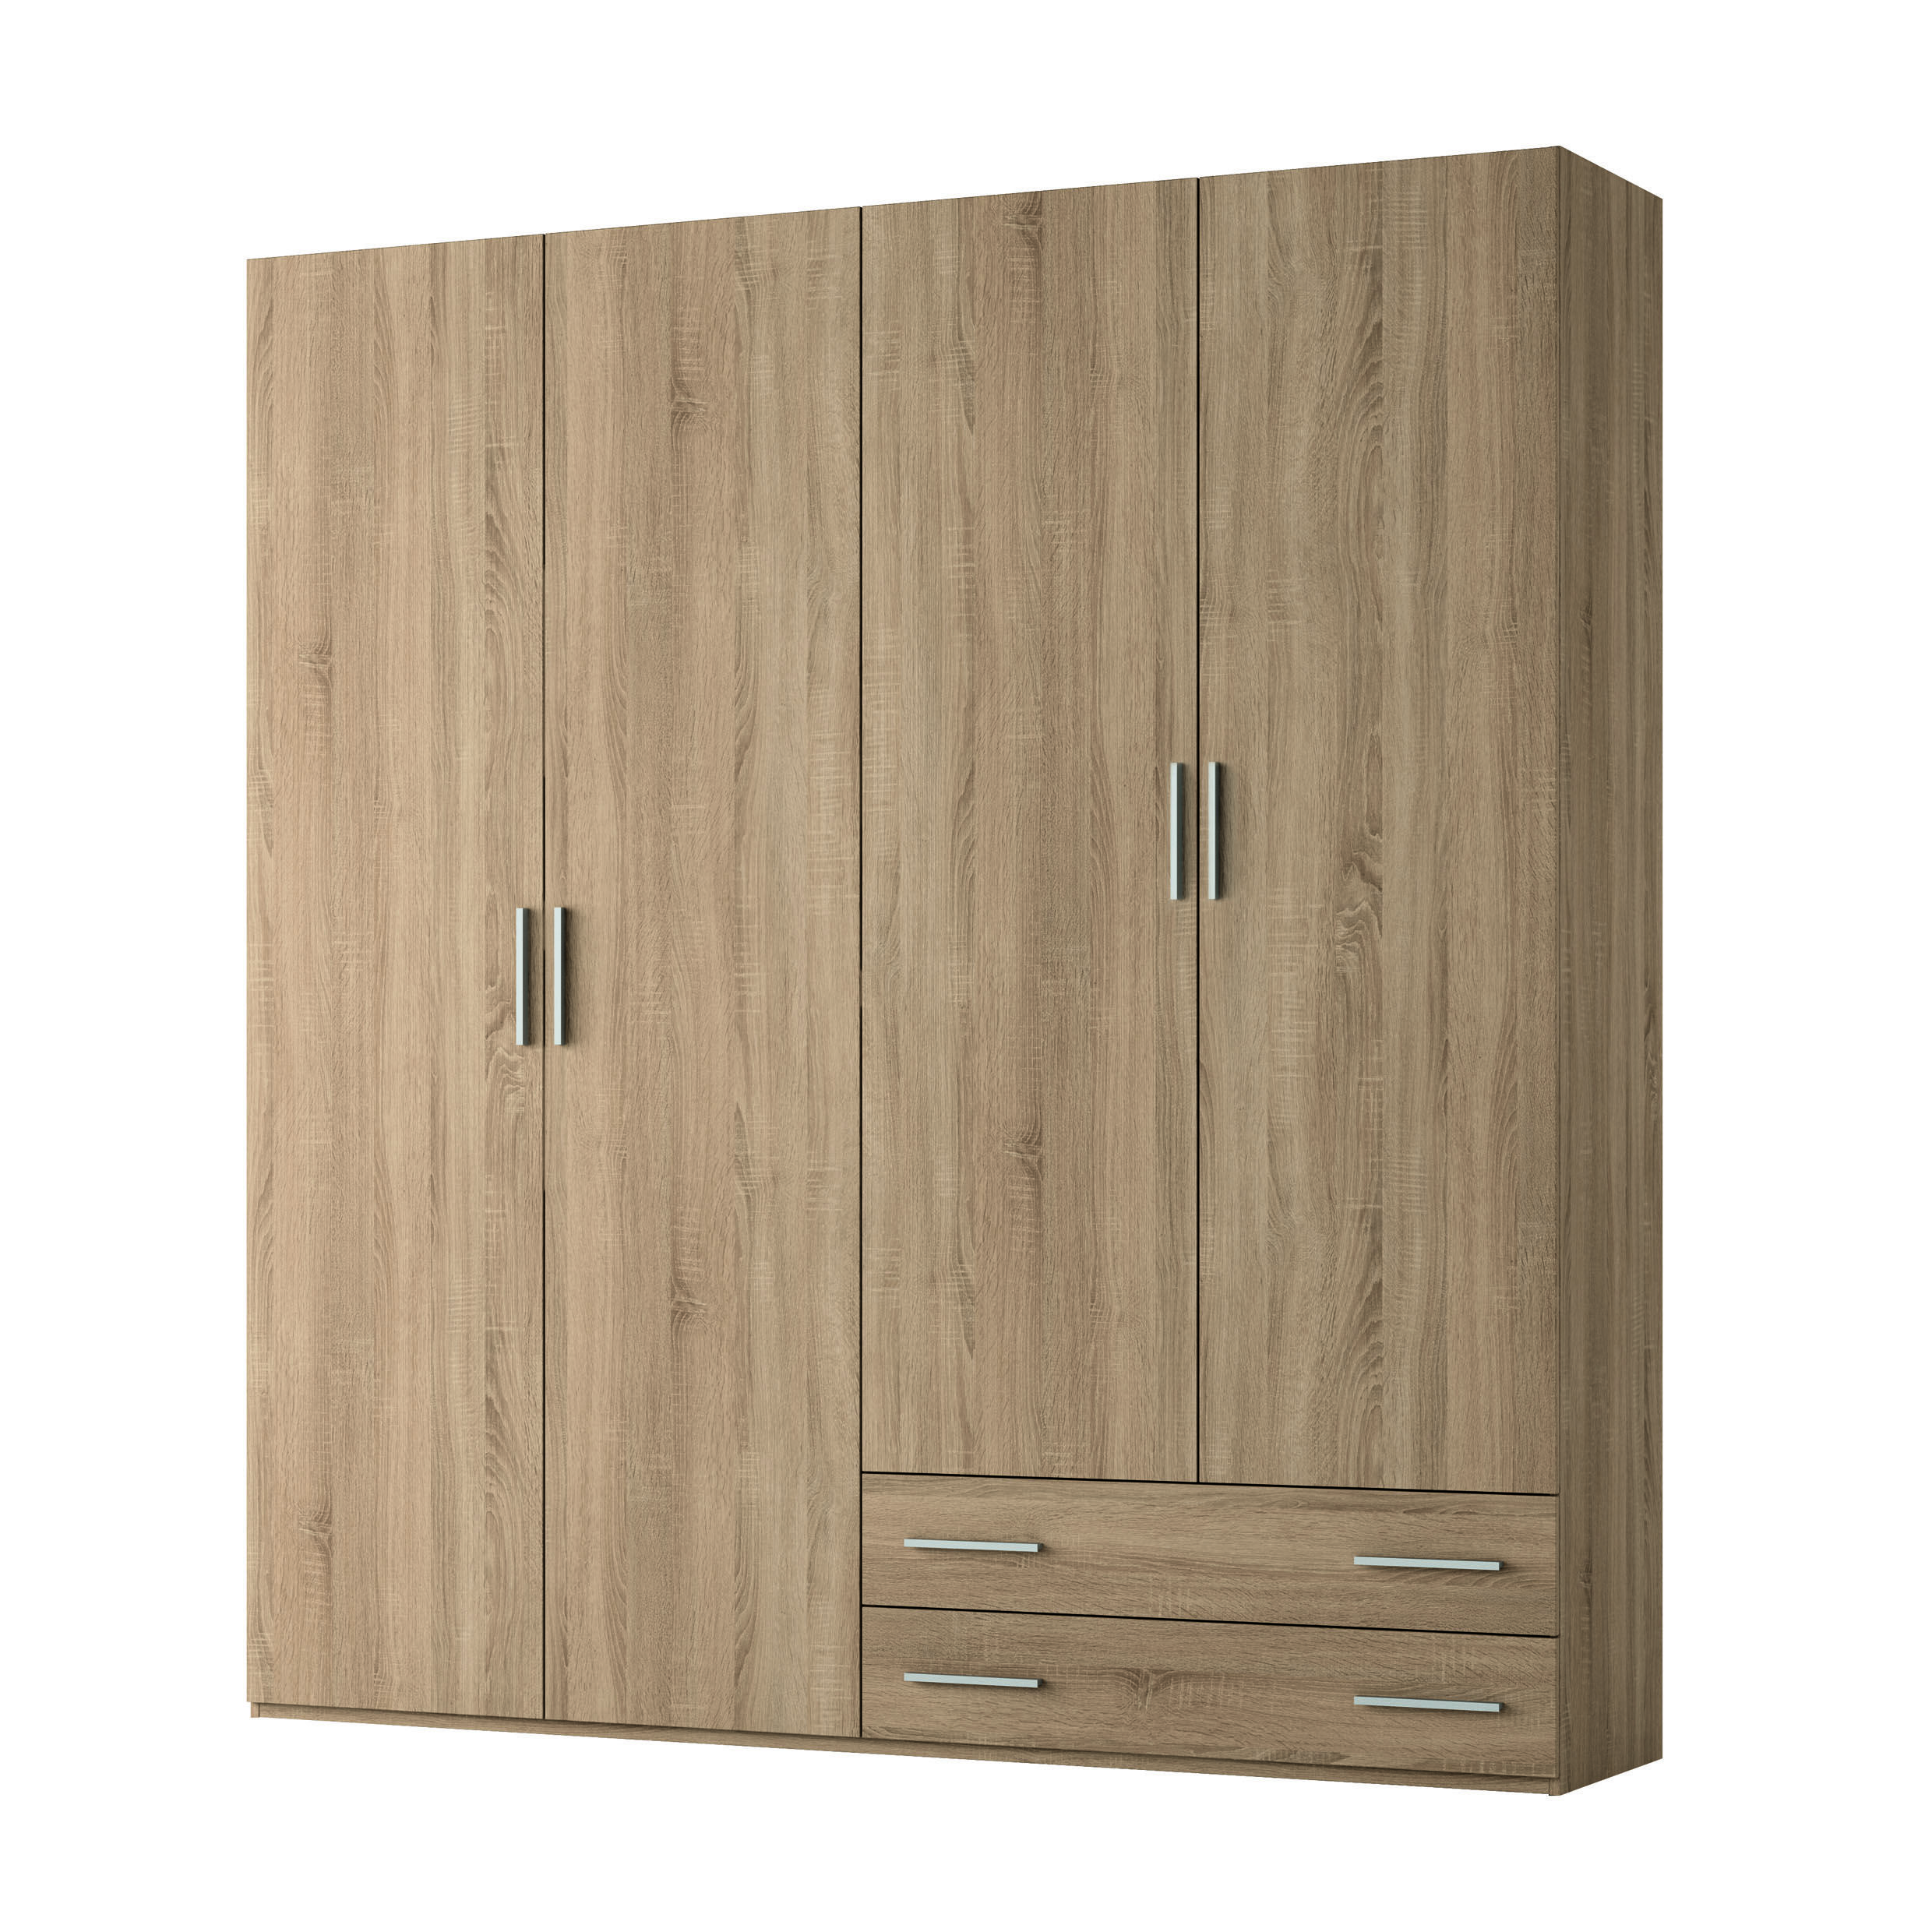 Armario de puertas abatibles xeniccnx128 disponible en for Catalogo de muebles mato